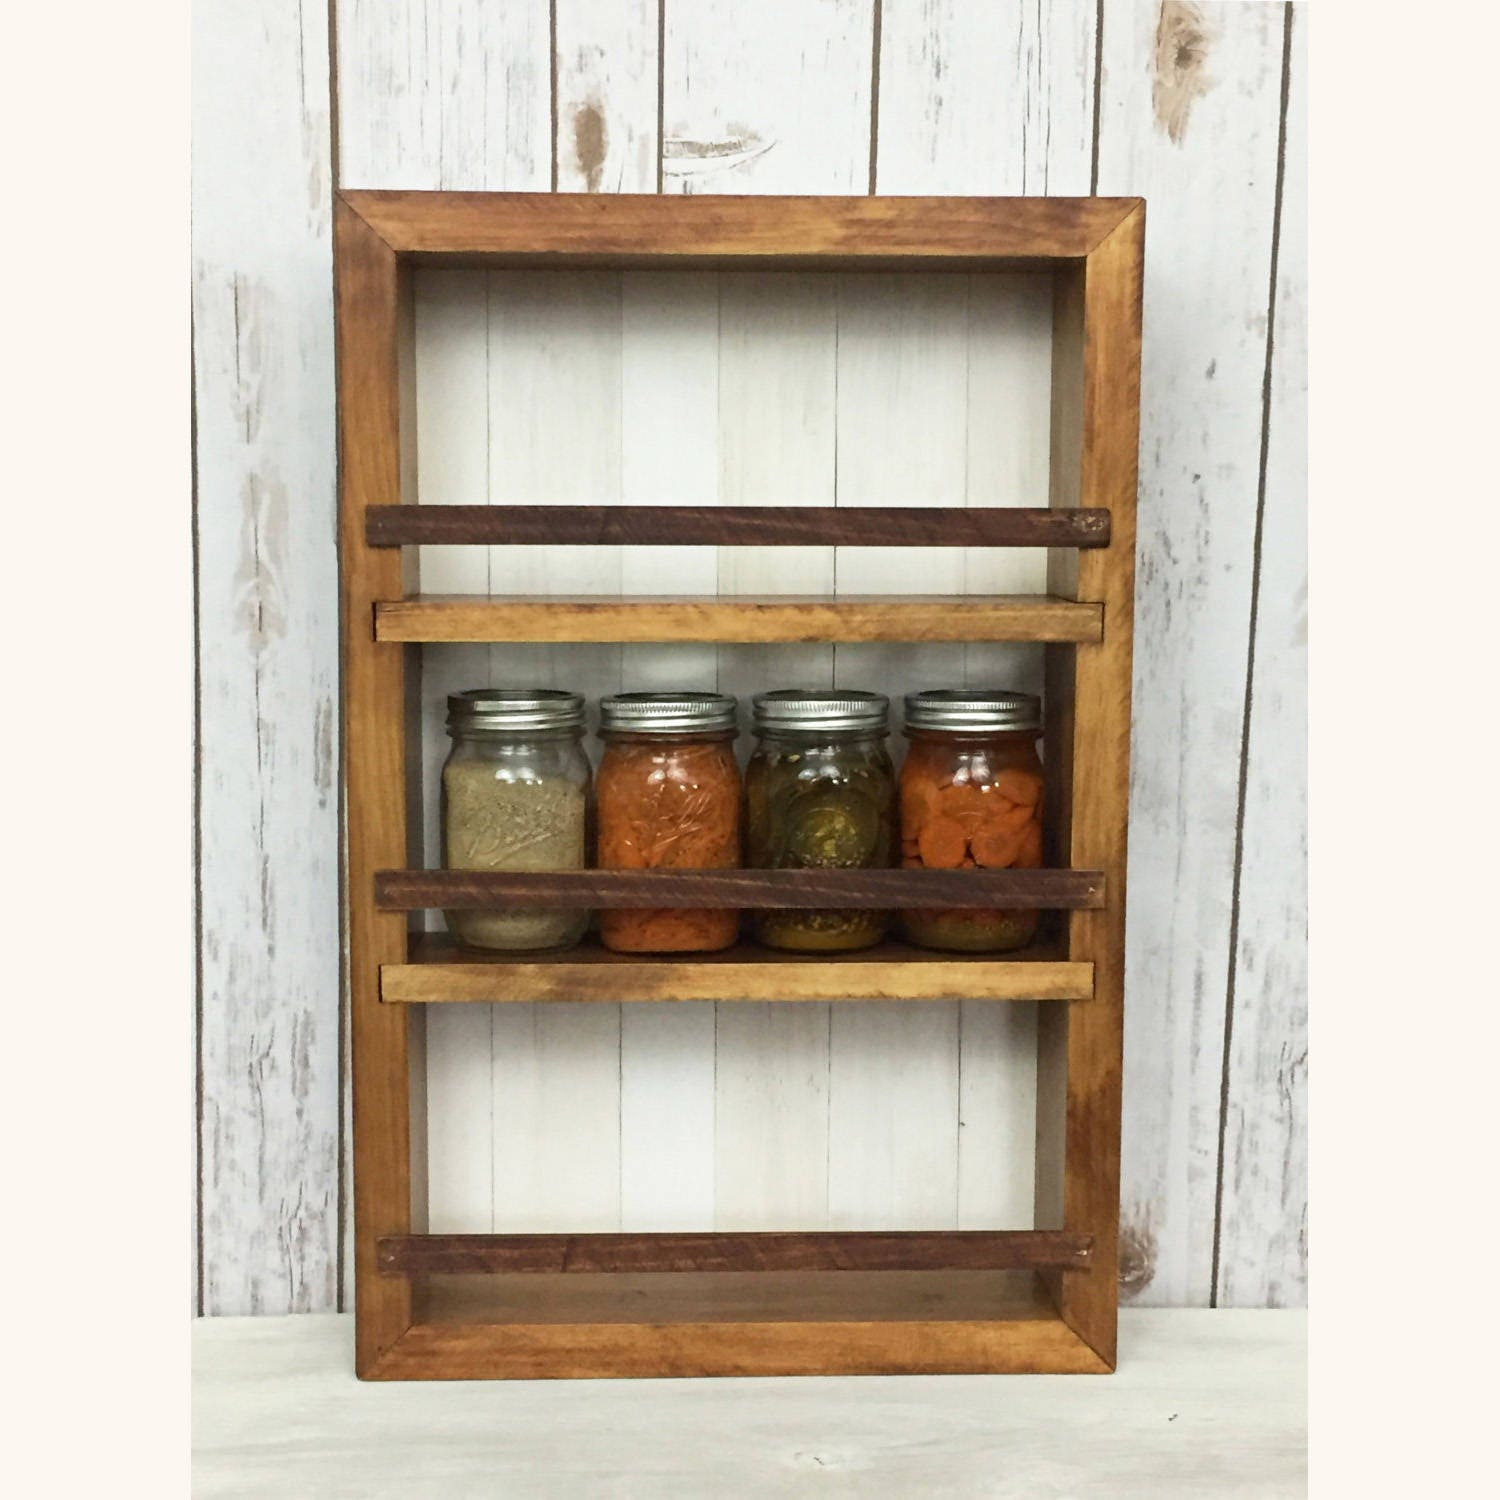 Kitchen Shelves Spice Racks Spice Rack Kitchen Cabinet